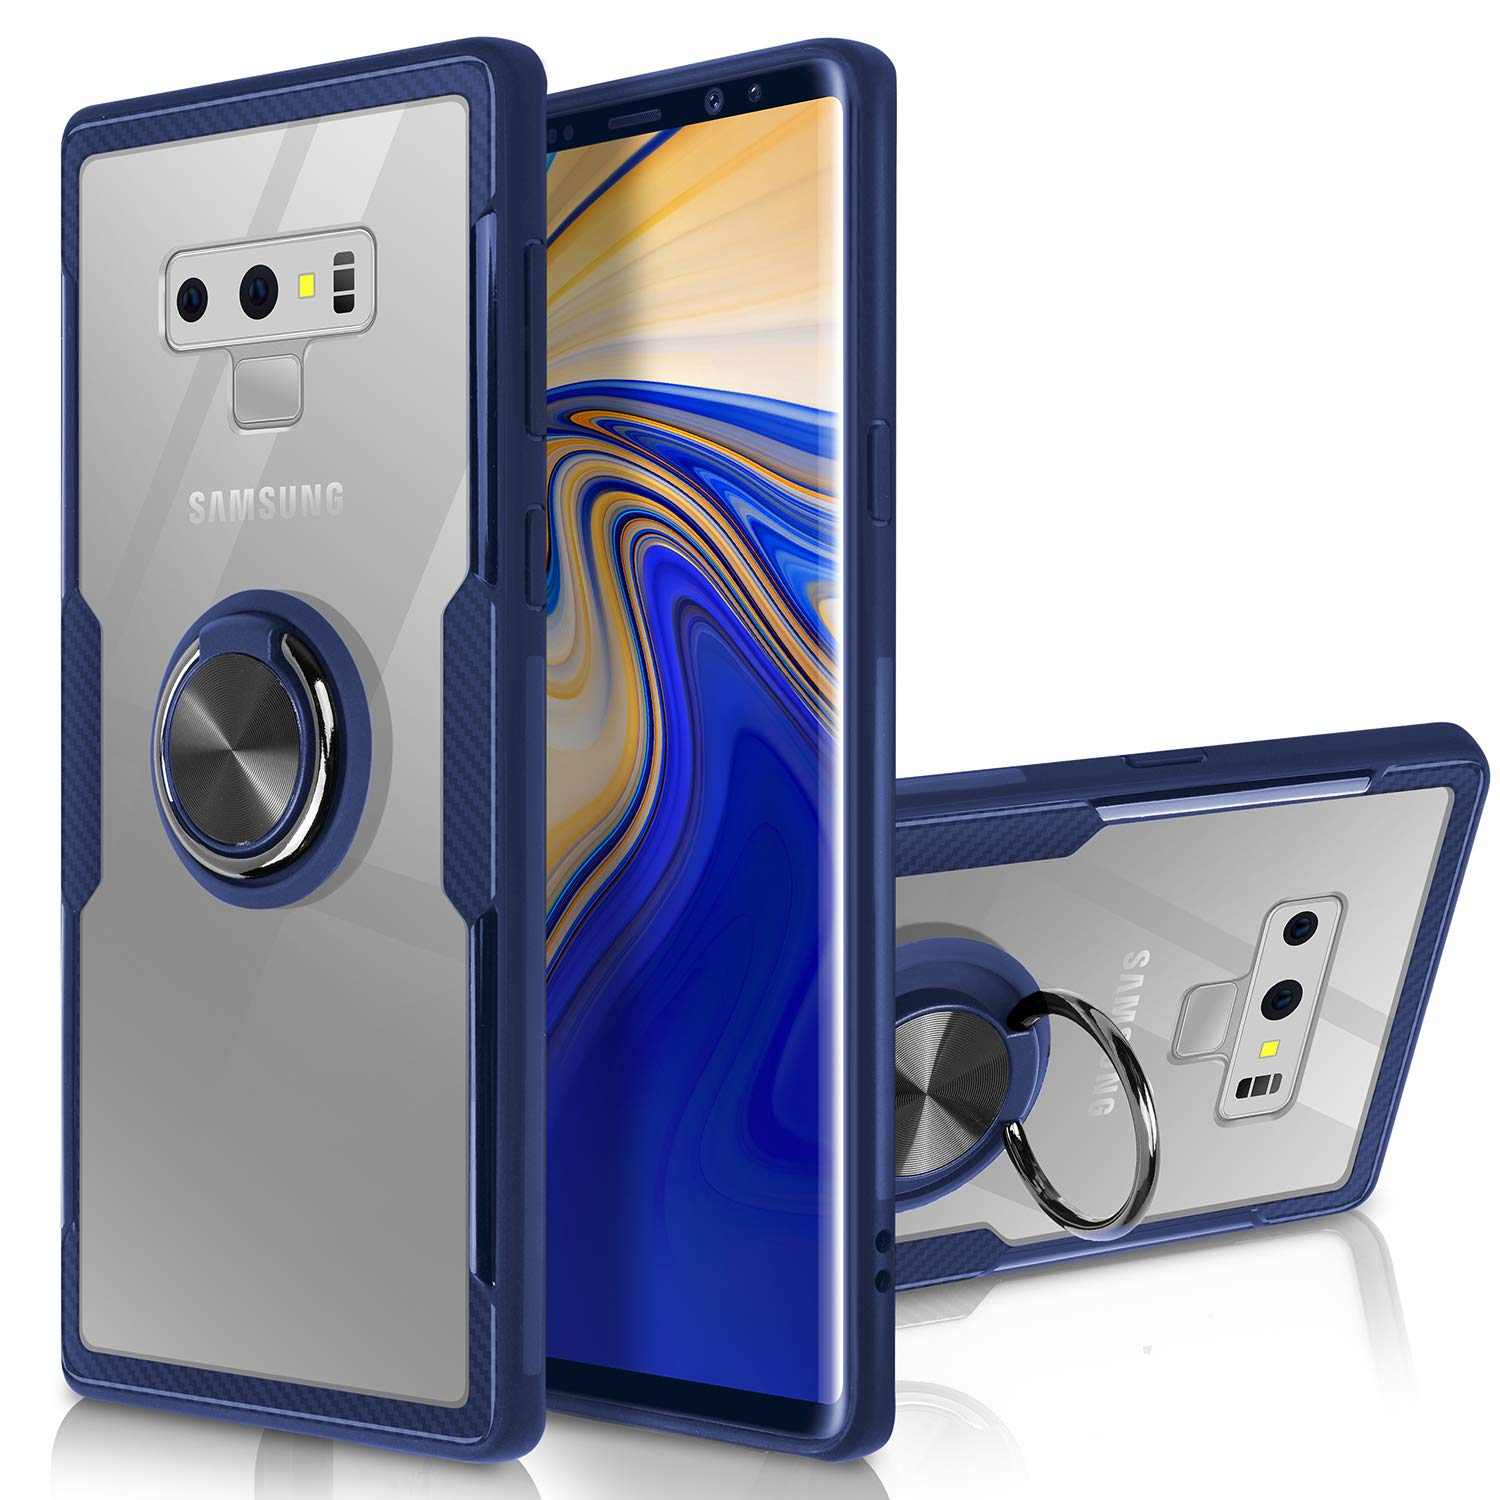 Galaxy S10E Case,WATACHE Clear Crystal Carbon Fiber Design Armor Protective Case with 360 Degree Rotating Finger Ring Grip Holde Stand for Galaxy S10E,Black Magnetic Car Mount Feature